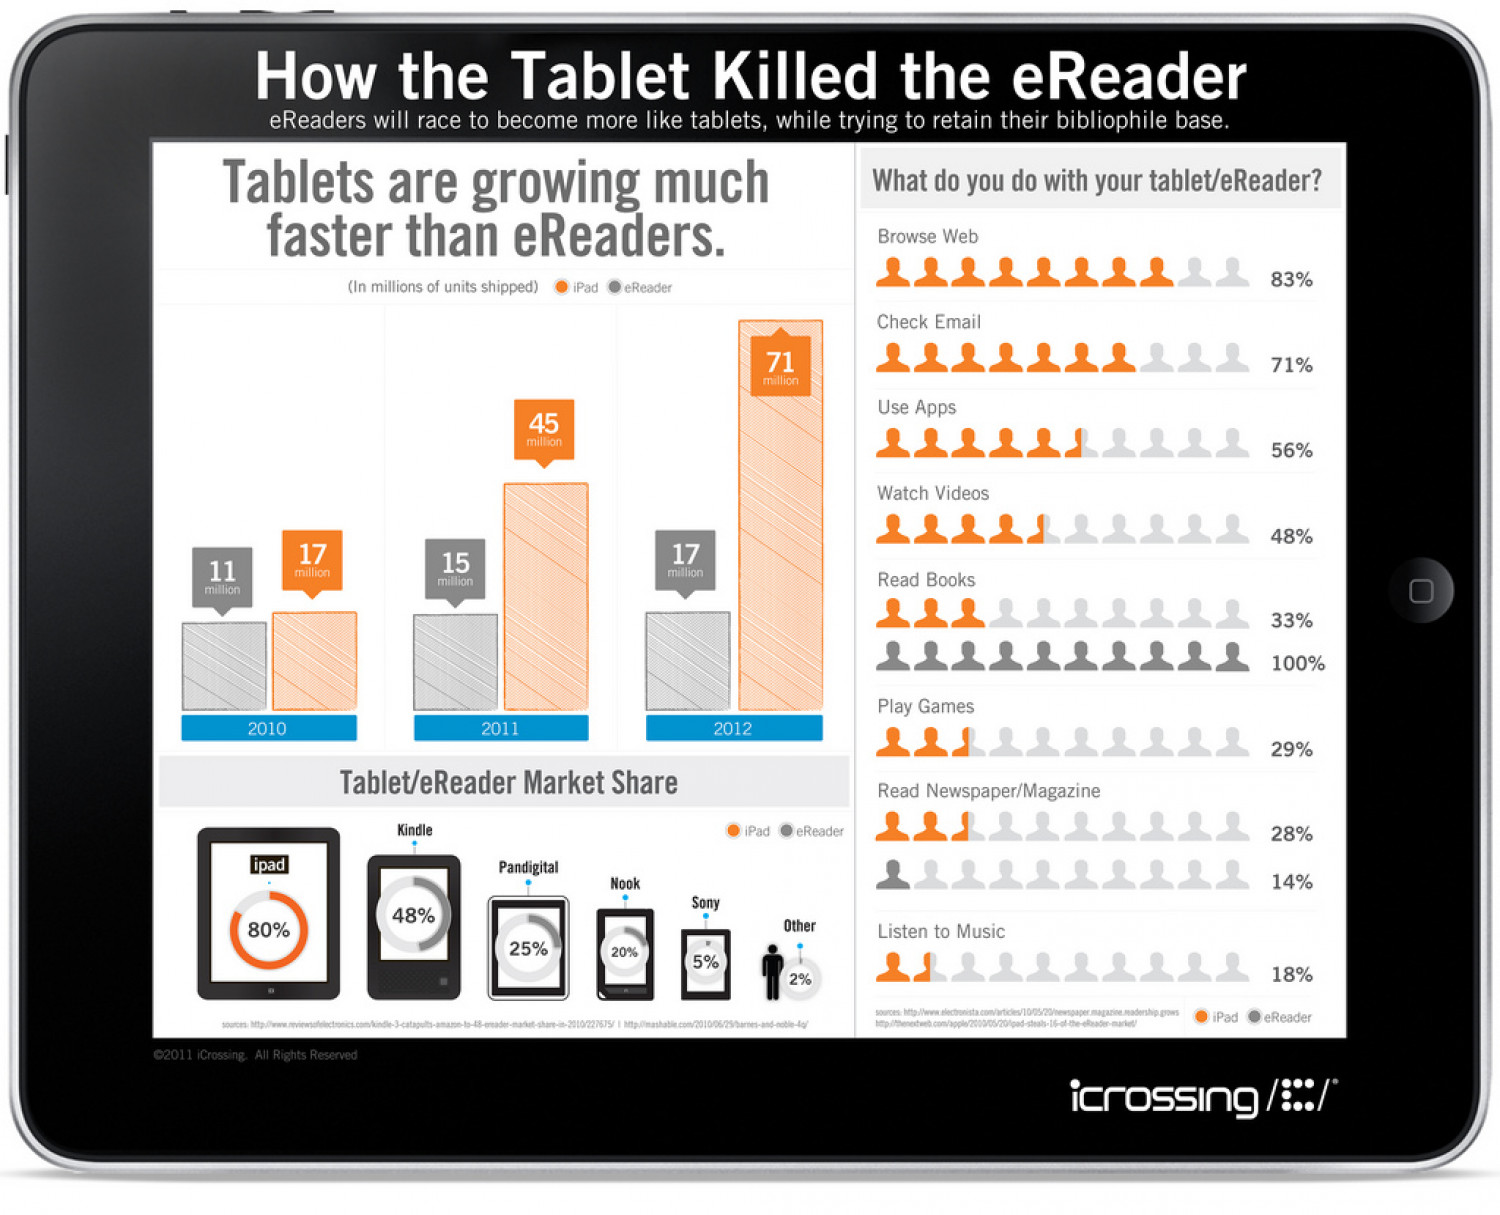 How the Tablet Killed the Ereader  Infographic